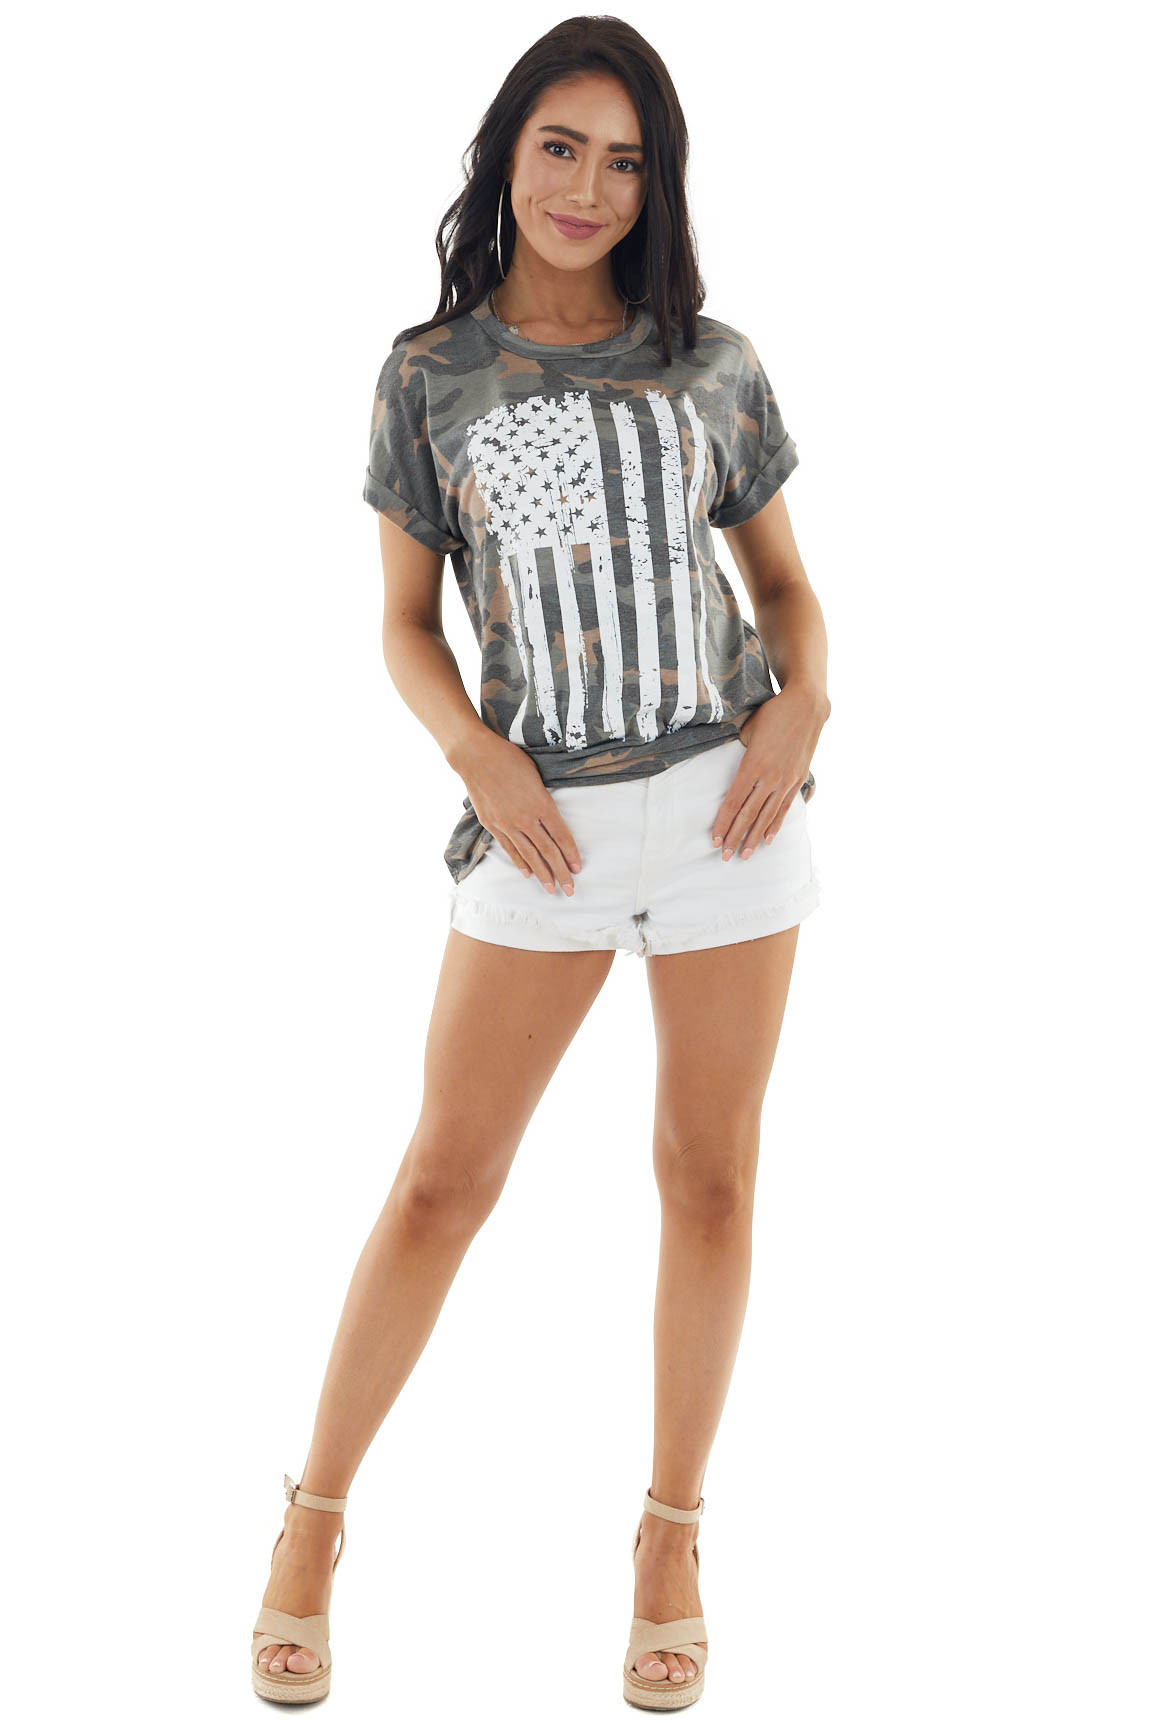 Ash and Charcoal Camo Print Top with American Flag Graphic